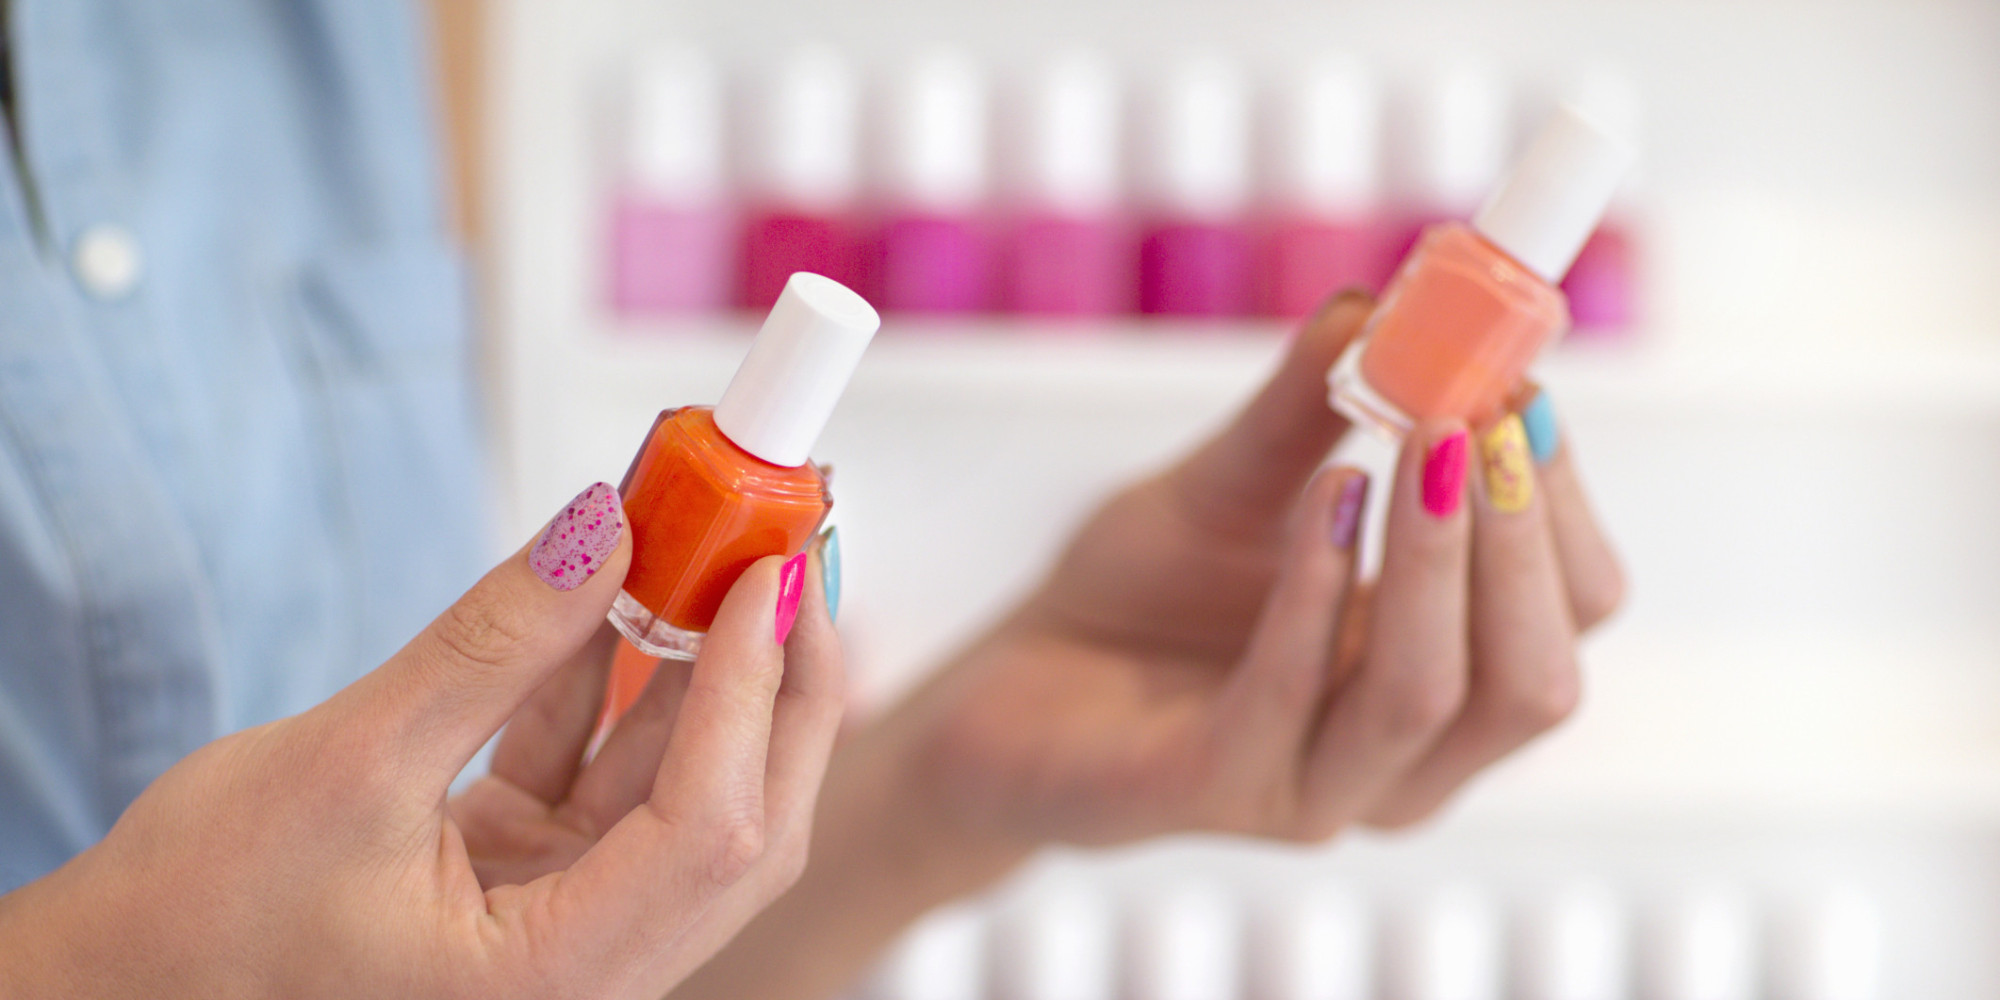 What Your Nail Polish Color Says About Your Personality Huffpost